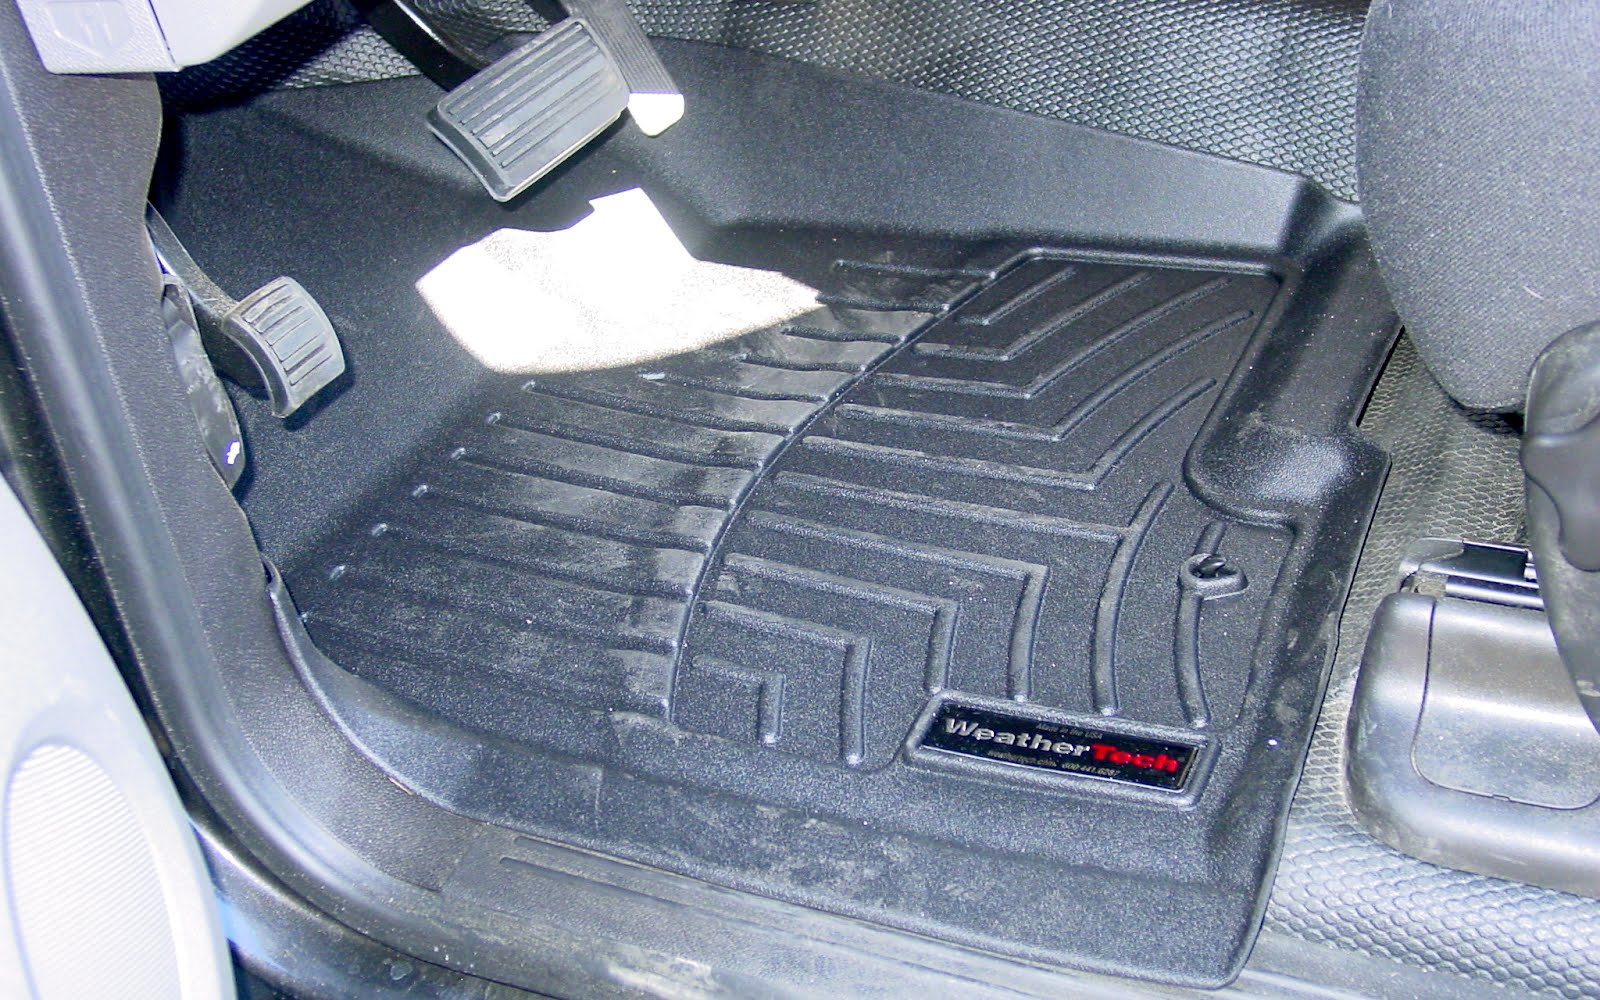 Weathertech floor mats amazon ca - I Bought A Set Of Weathertech Floor Mats Part Number 440661 For The Chevy Silverado 1500 Regular Cab Model Wt Off Amazon They Are Not Floppy Rubber Mats